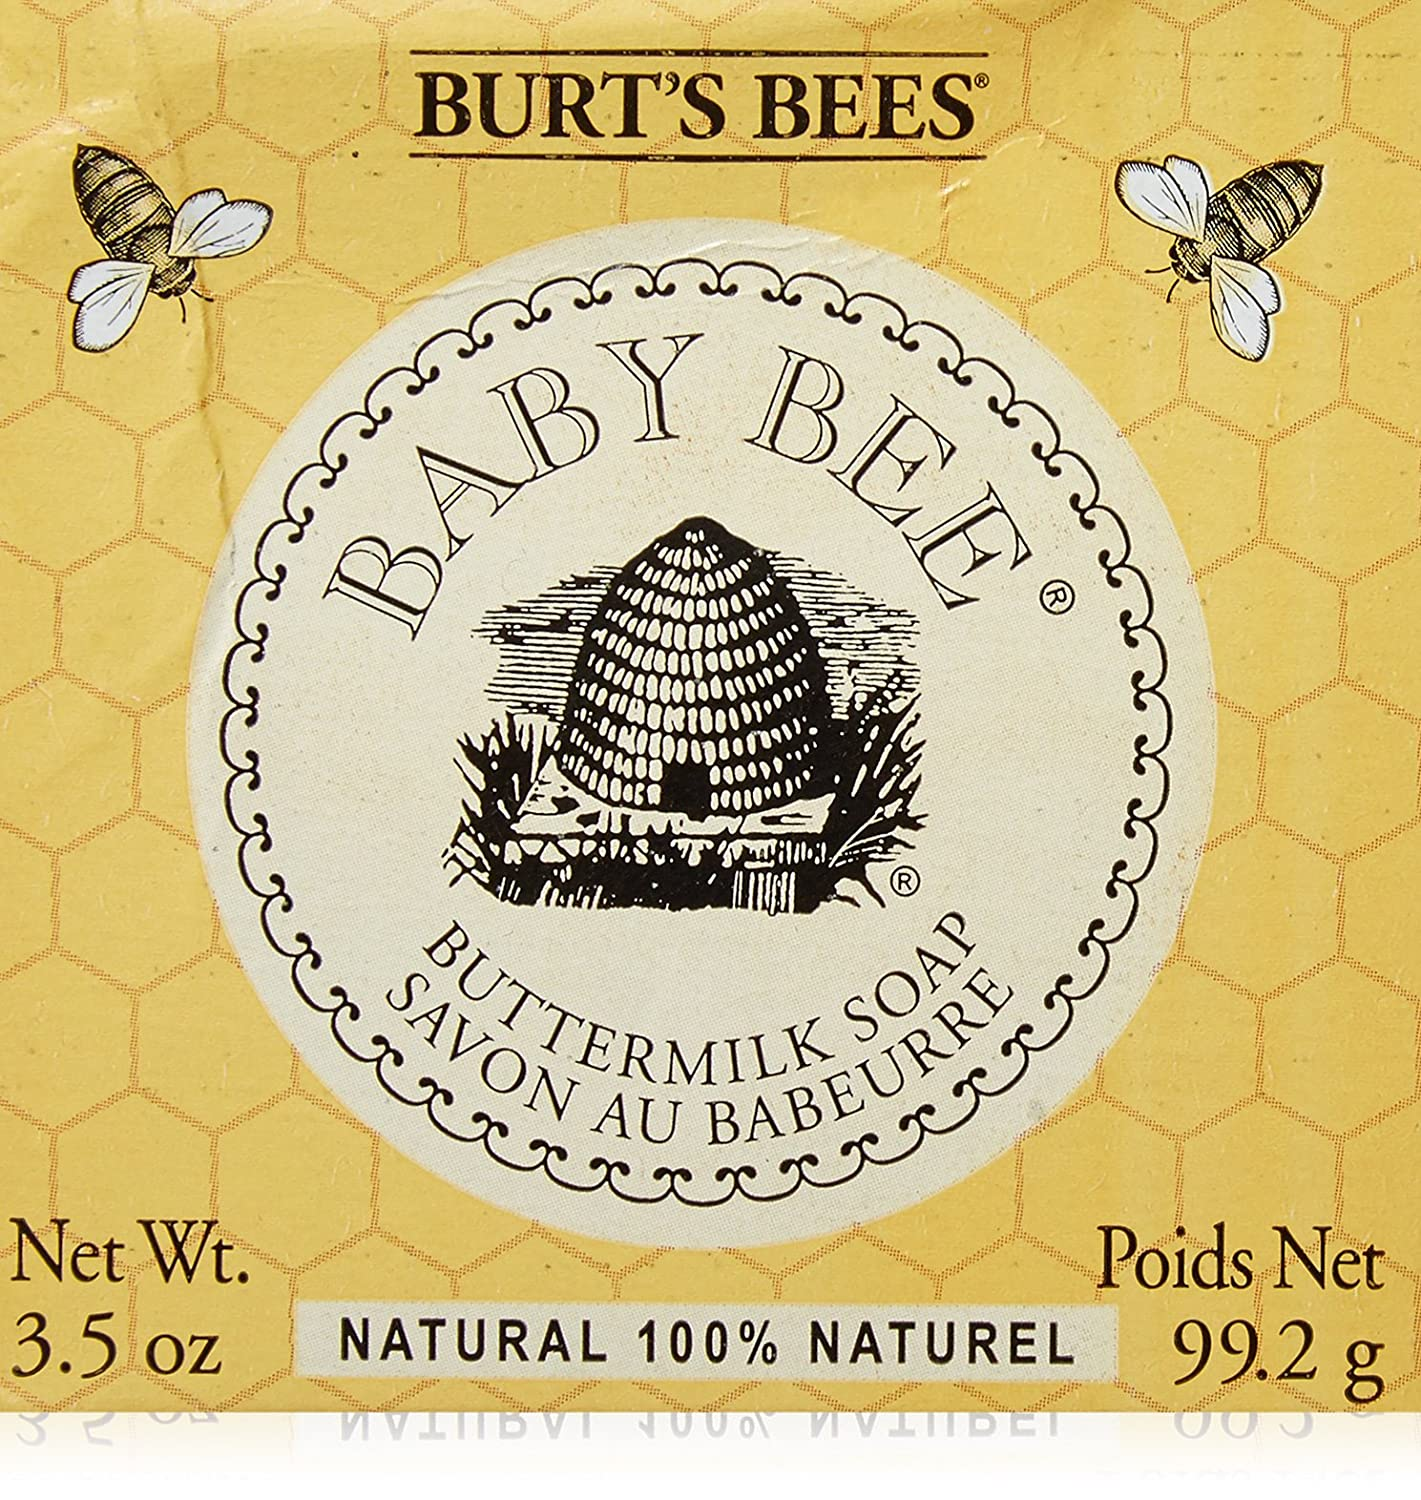 Burt's Bees Baby Bee Buttermilk Soap 3.50 oz (Pack of 4) BURT' S BEES